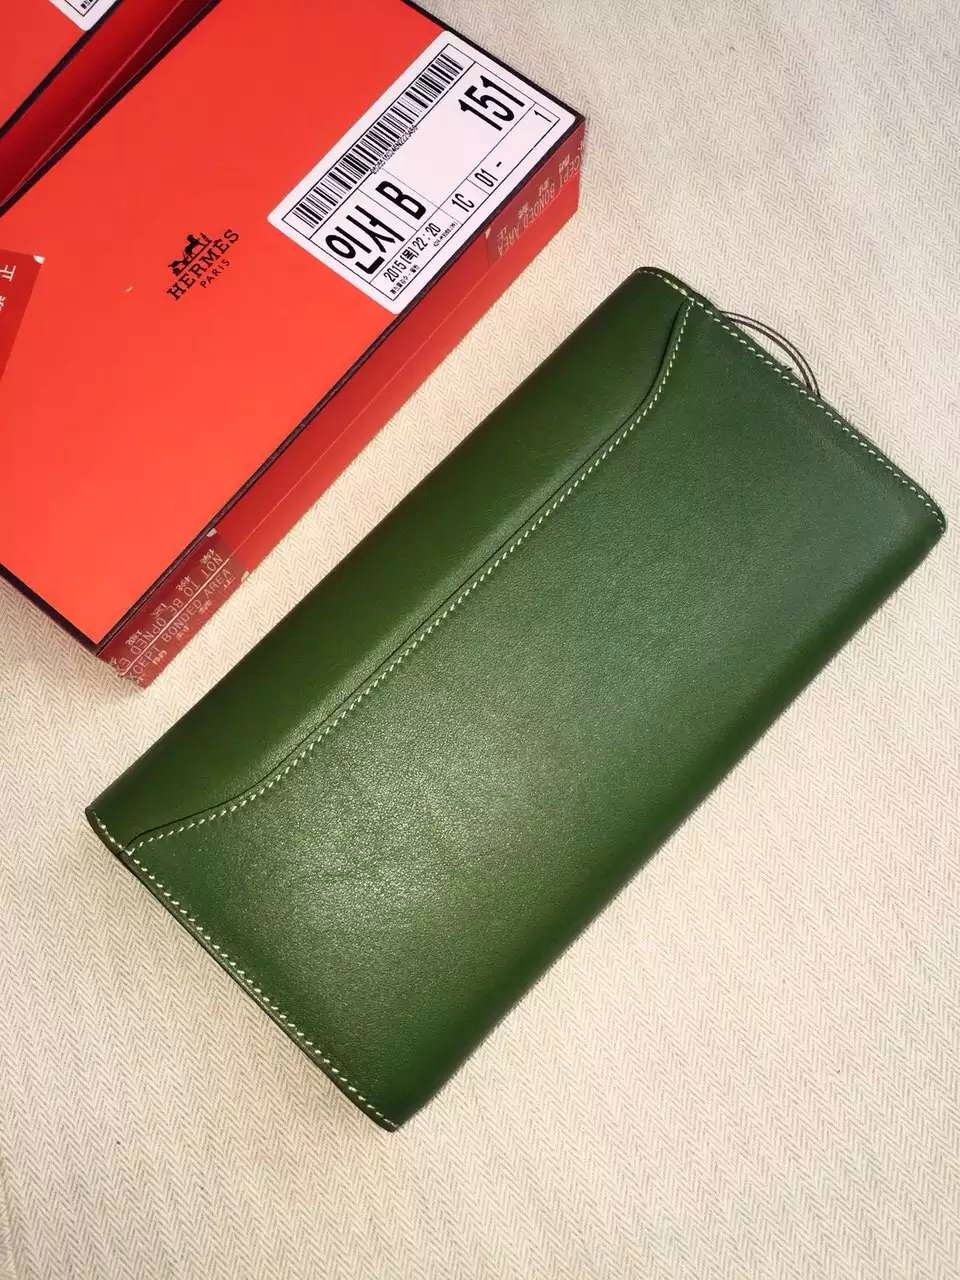 Cheap Hermes Swift Leather Constance Long Wallet Clutch Bag in V6 Olive Green 21CM